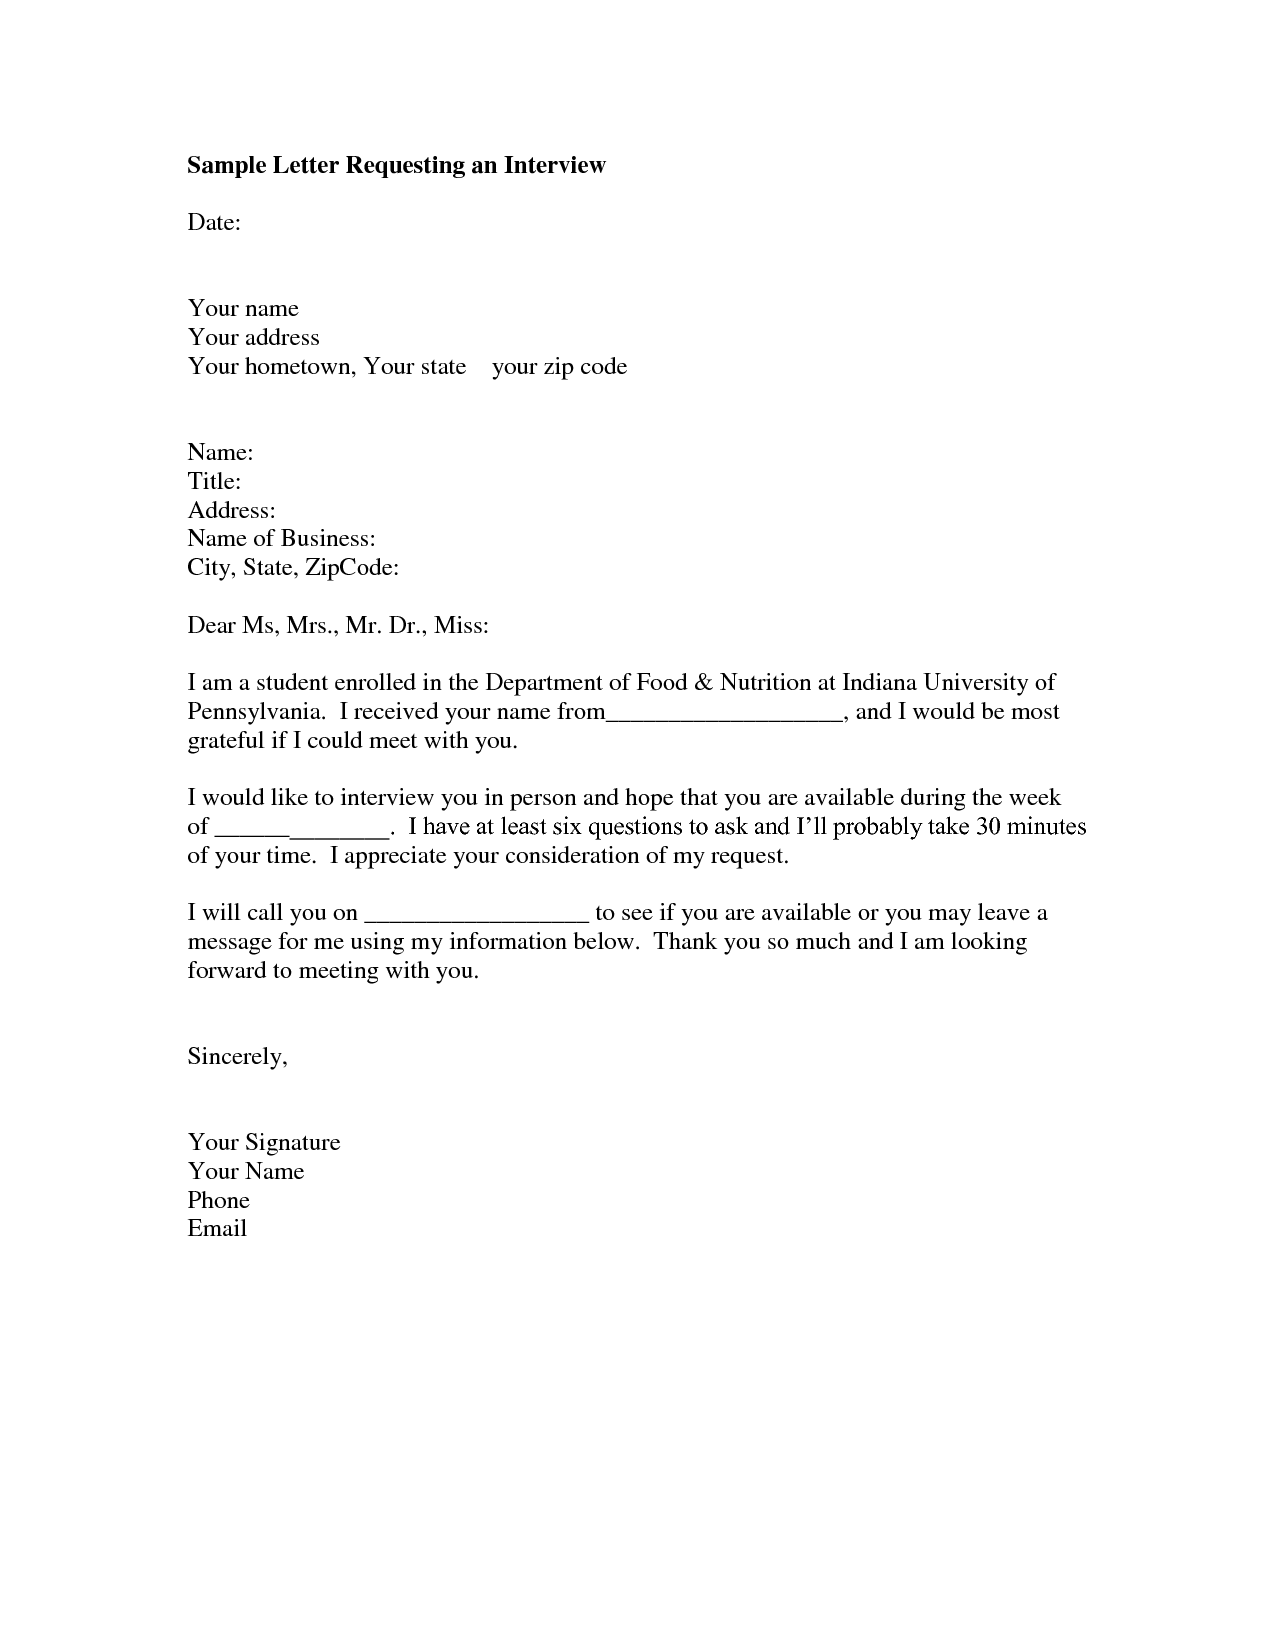 Interview request letter sample format of a letter you can use interview request letter sample format of a letter you can use to request an interview thecheapjerseys